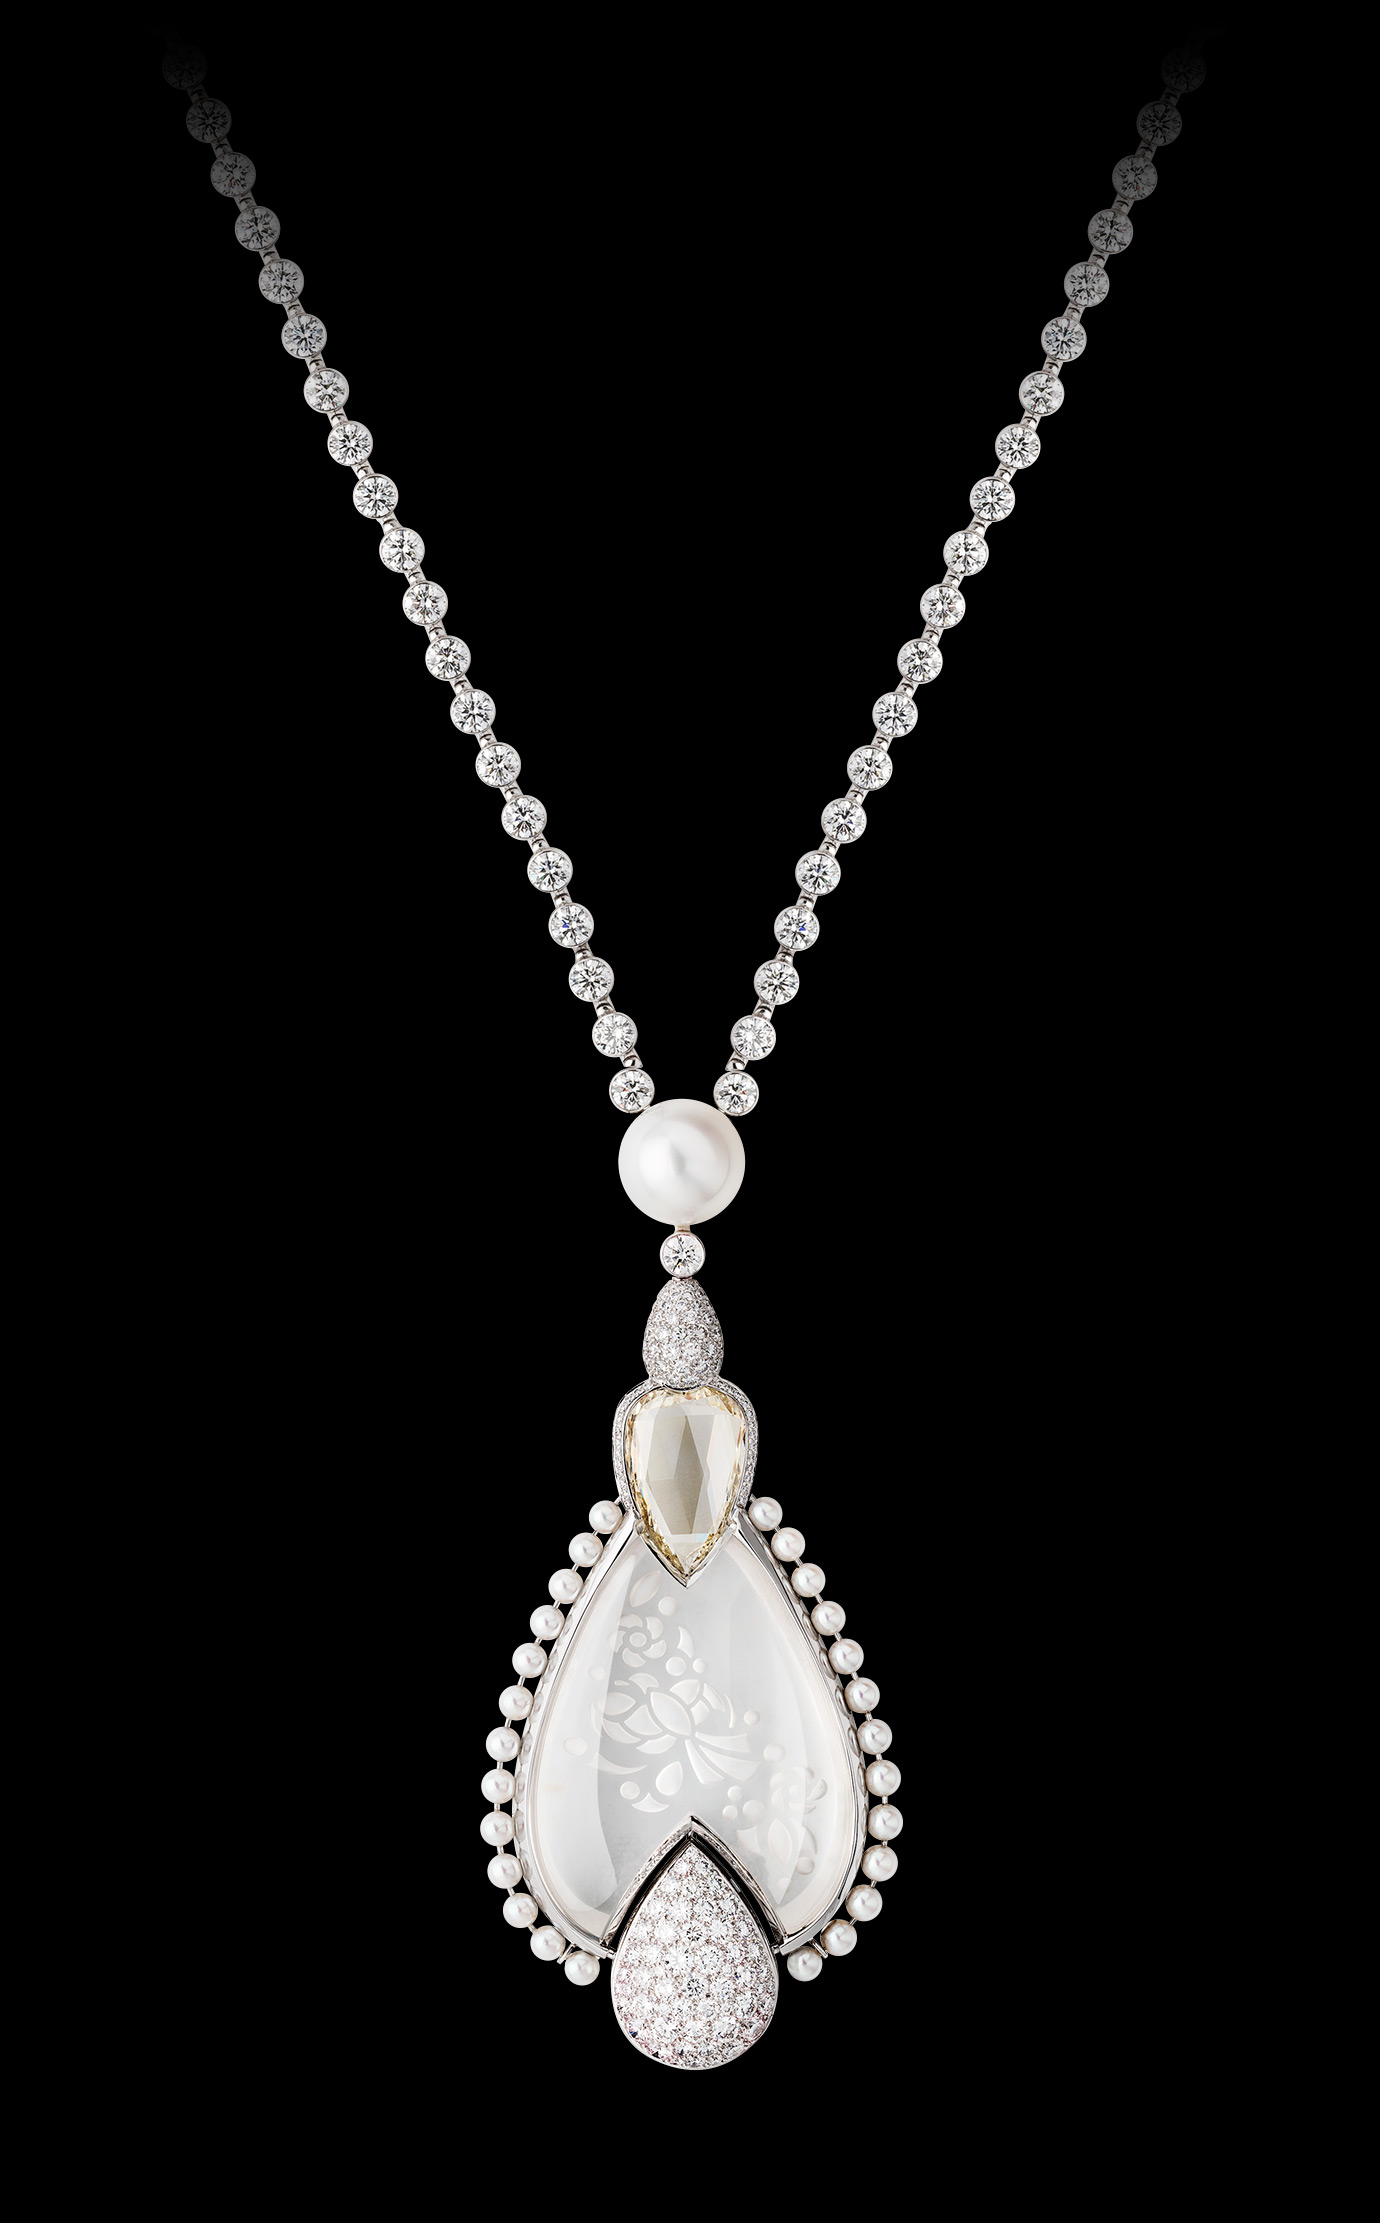 'Médaillon' watch. The backside of this medallion composed of engraved rock crystal, pearls and diamonds (including one 5.32-carat Fancy Light Yellow pear-cut diamond) conceals a diamond-paved watch dial. The medallion hangs elegantly from an 18K white gold sautoir set with 587 diamonds. - Front